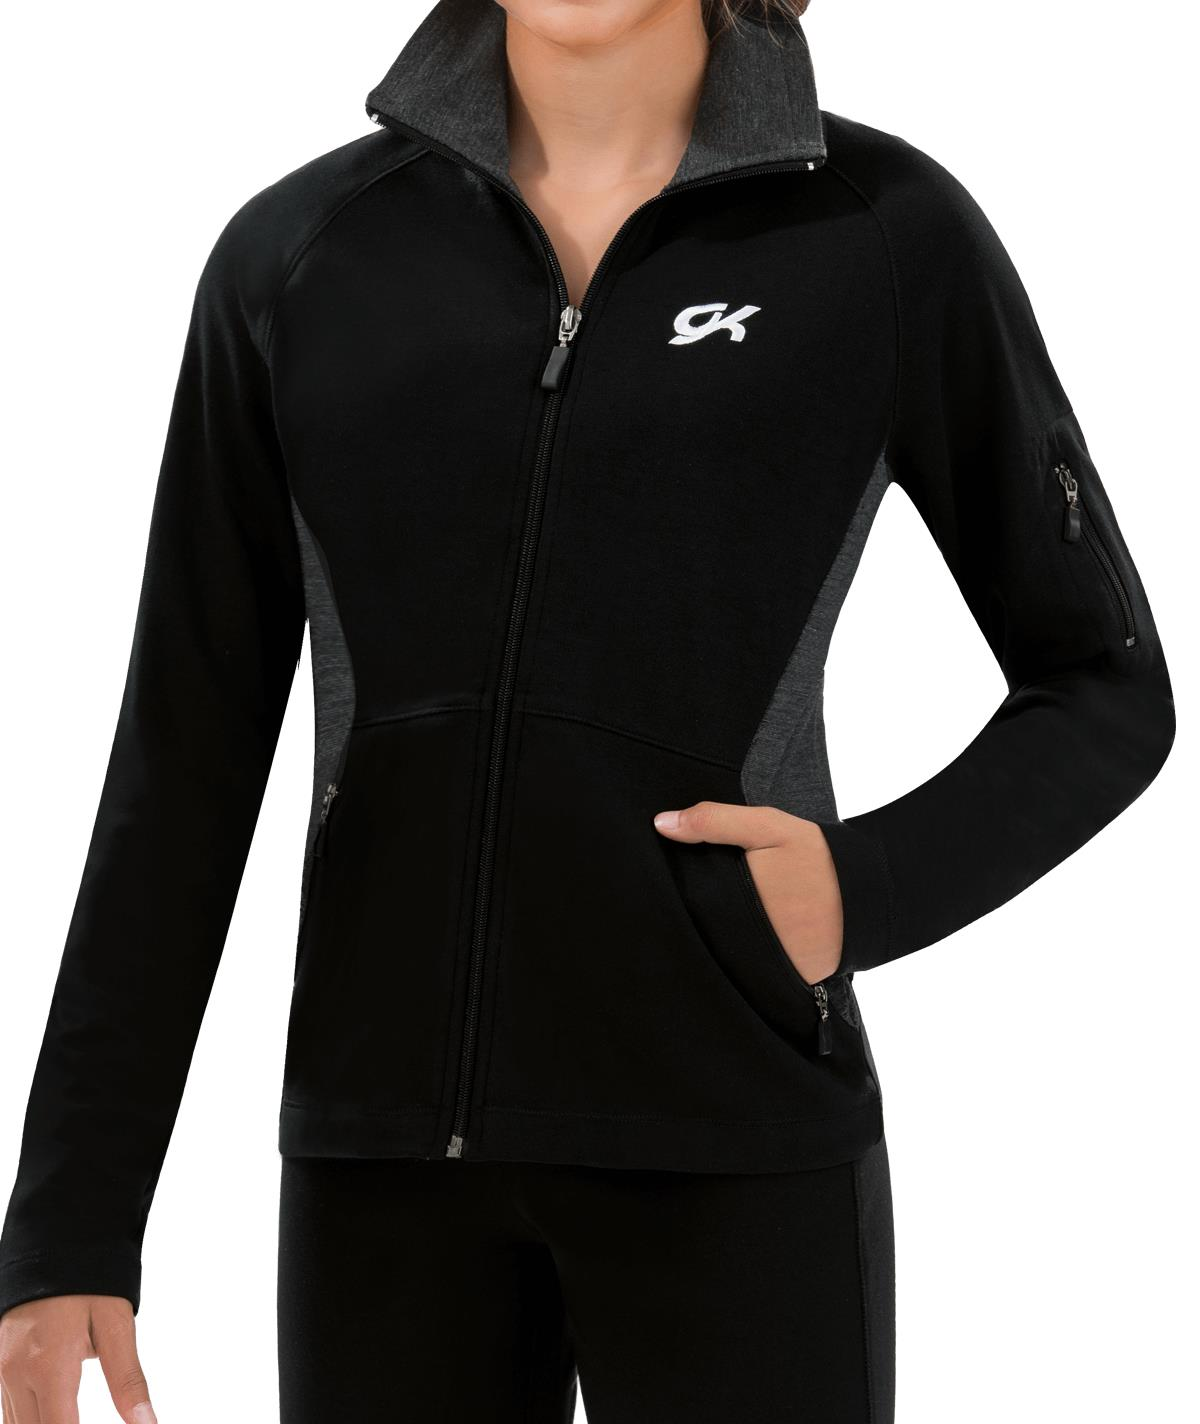 GK Balance Warm-Up Jacket